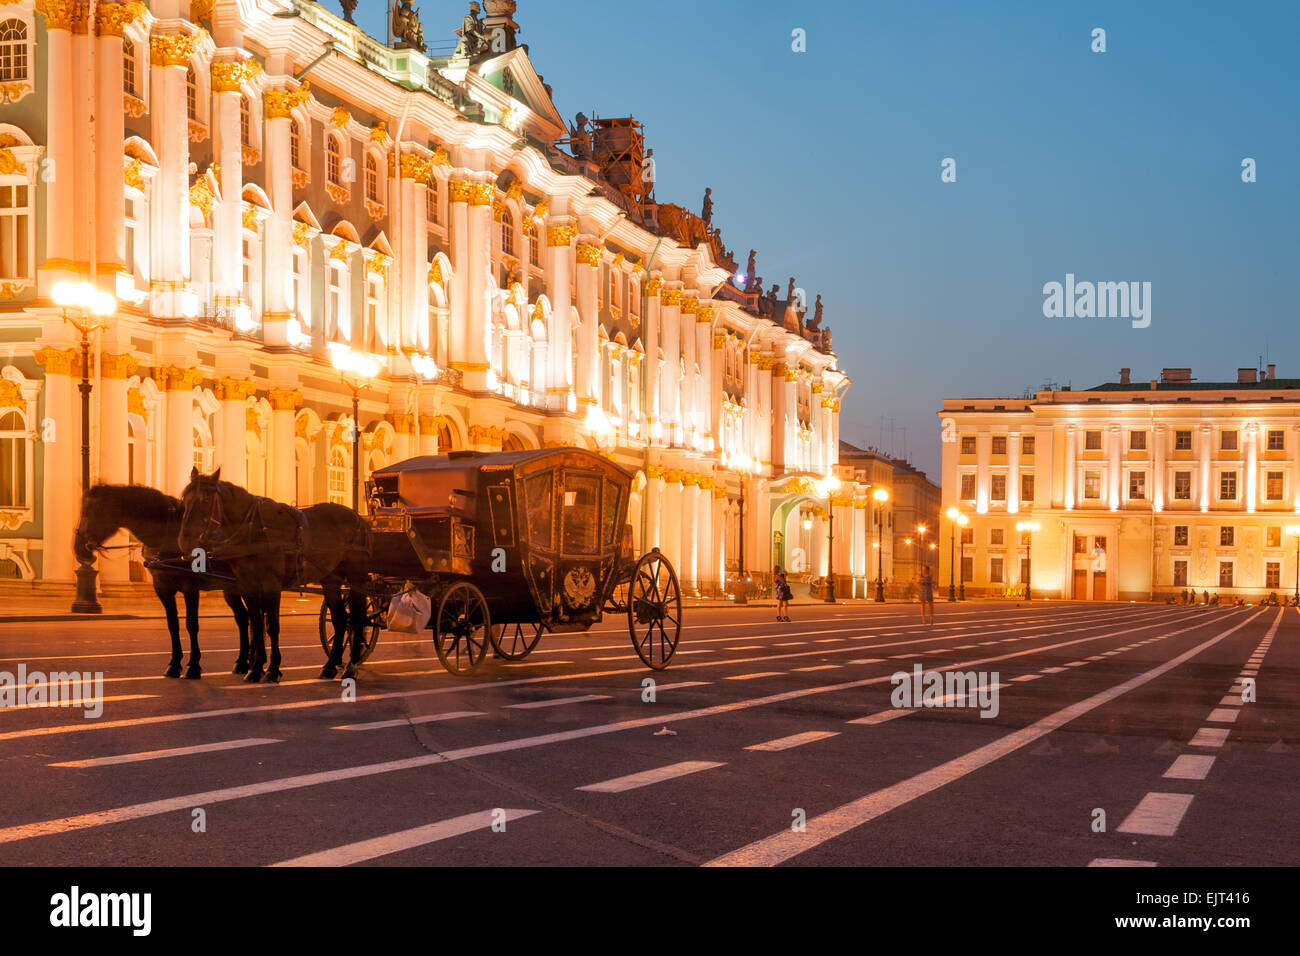 Horse-drawn carriage by the Winter palace on Palace square, Saint Petersburg, Russia Stock Photo